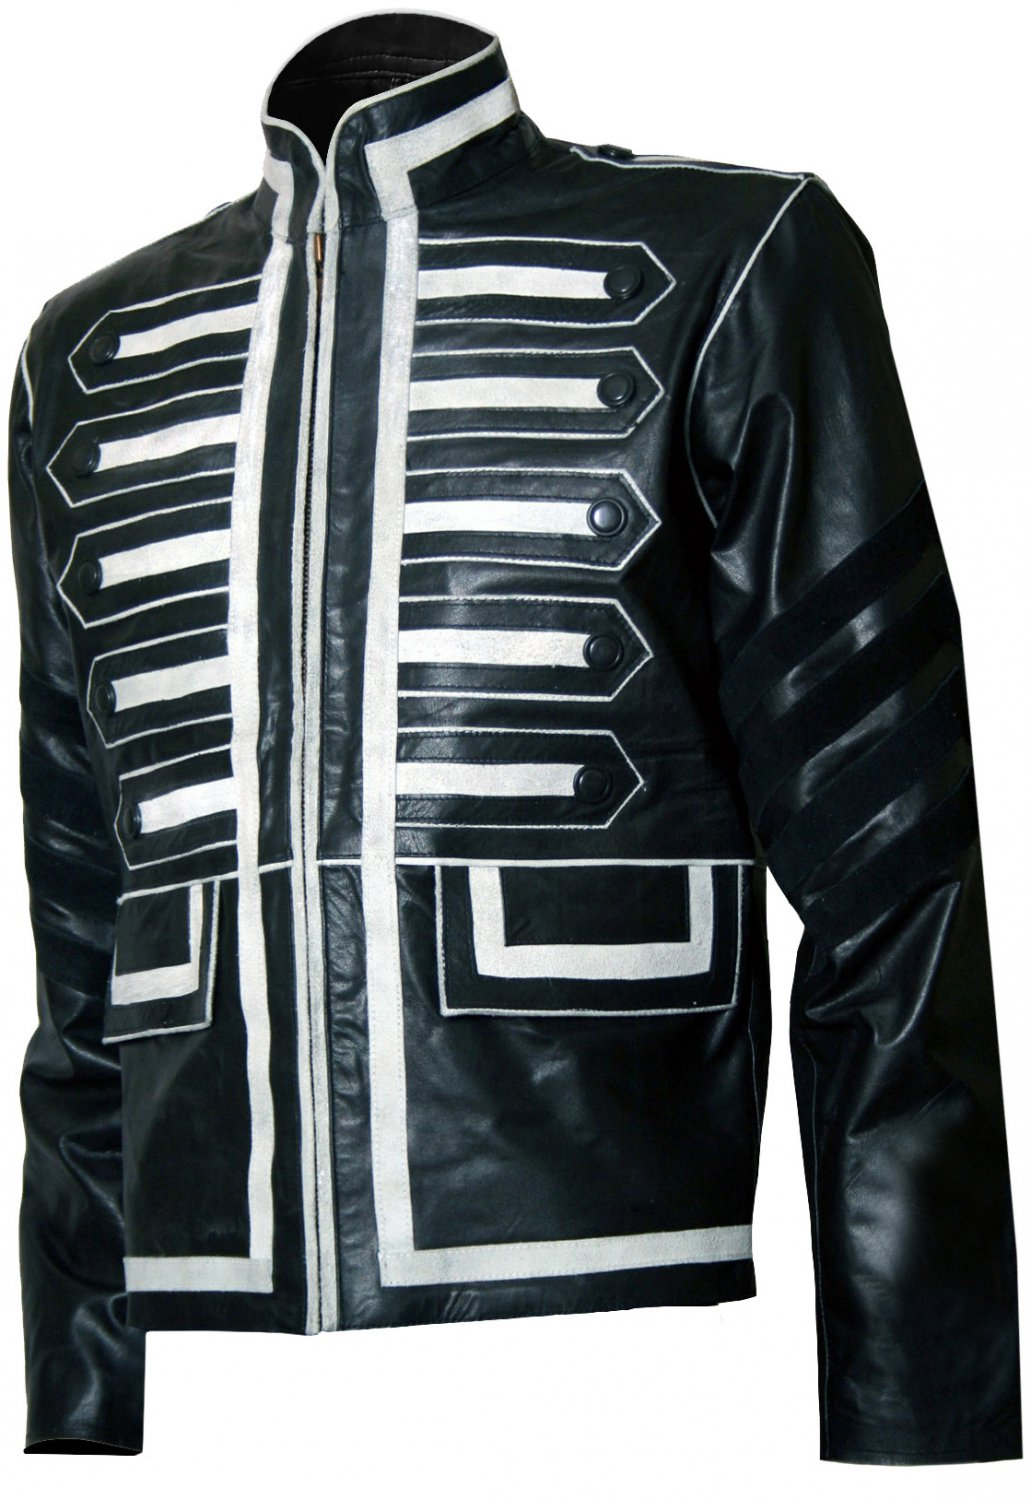 Military Look Men Black and White Leather Jacket - Gon